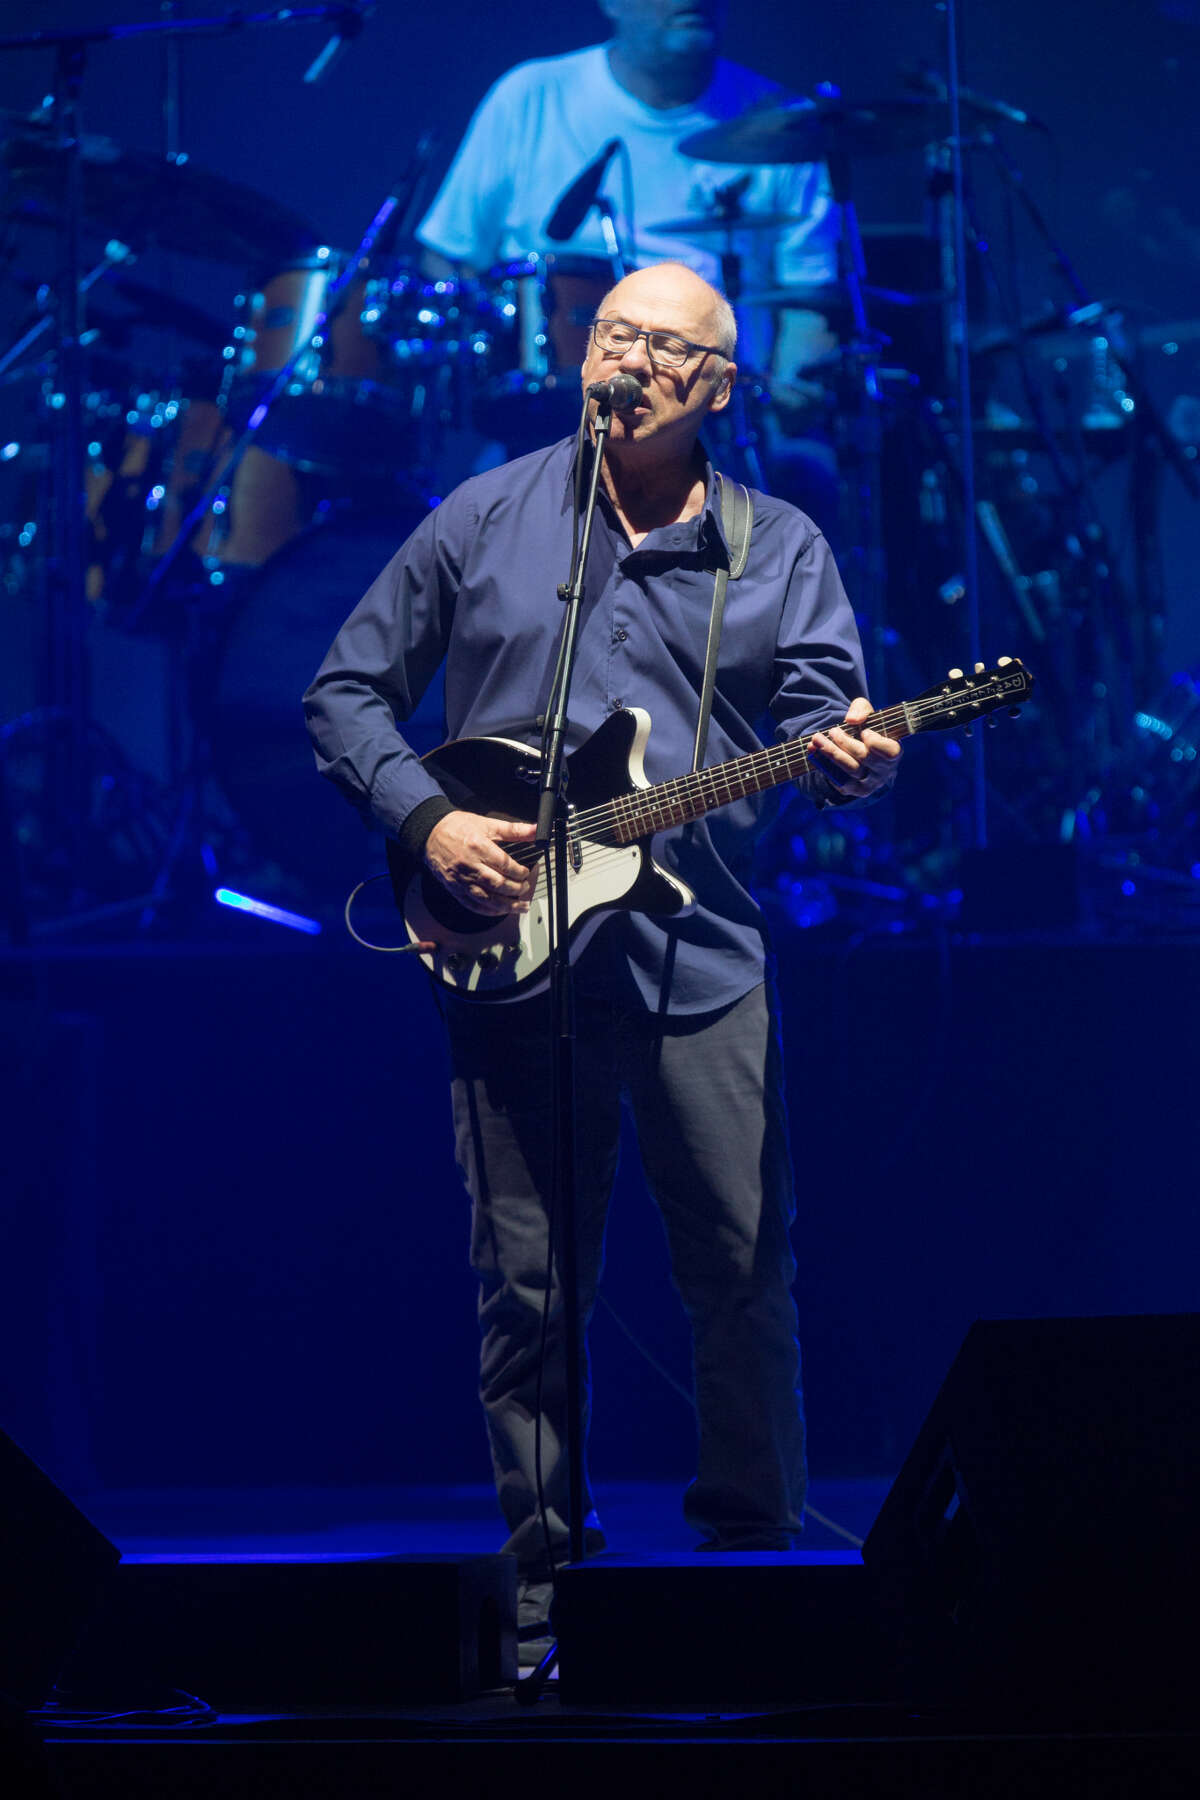 Mark Knopfler at the Smart Financial Centre in Sugar Land on Sept. 6, 2019. Photo by David W. Clements.